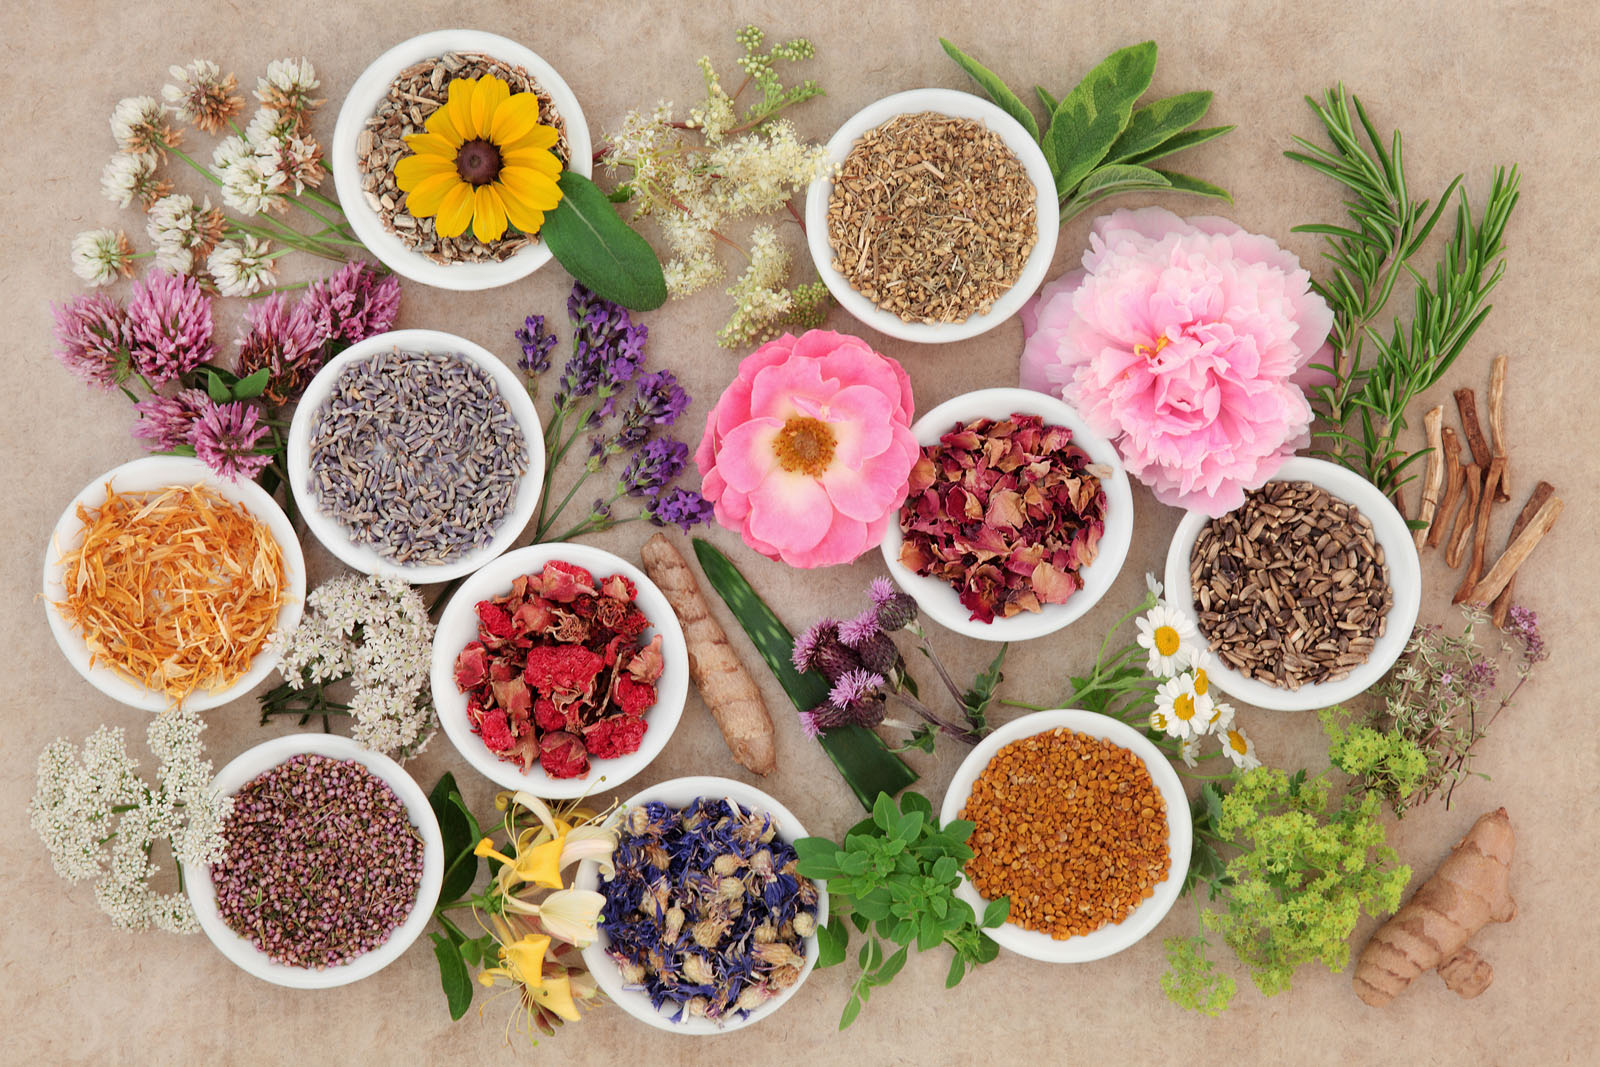 Healing herb and flower selection used in herbal medicine over handmade hemp paper background.